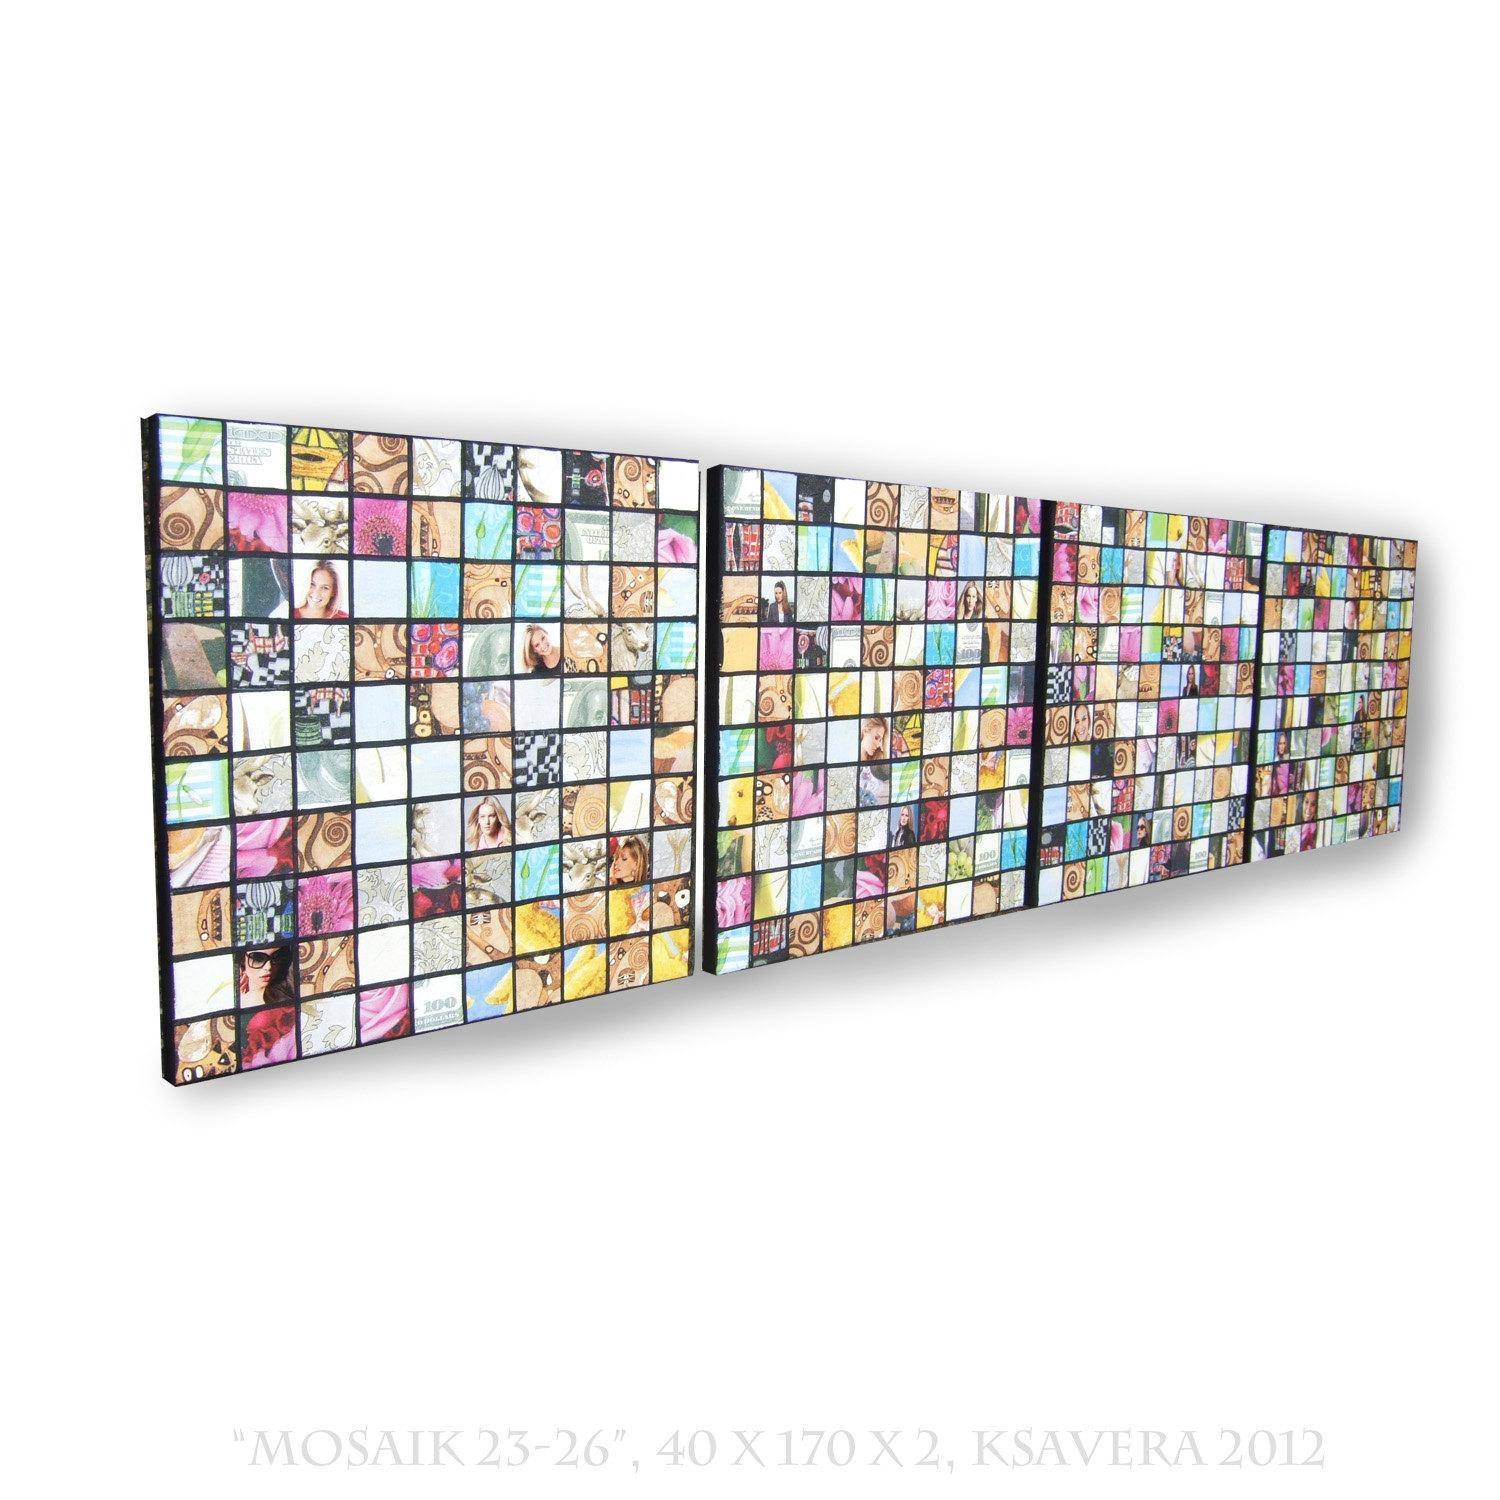 Napkins Decoupage Mosaic On Canvas Long Vertical Abstract Art Pertaining To Decoupage Wall Art (View 4 of 20)